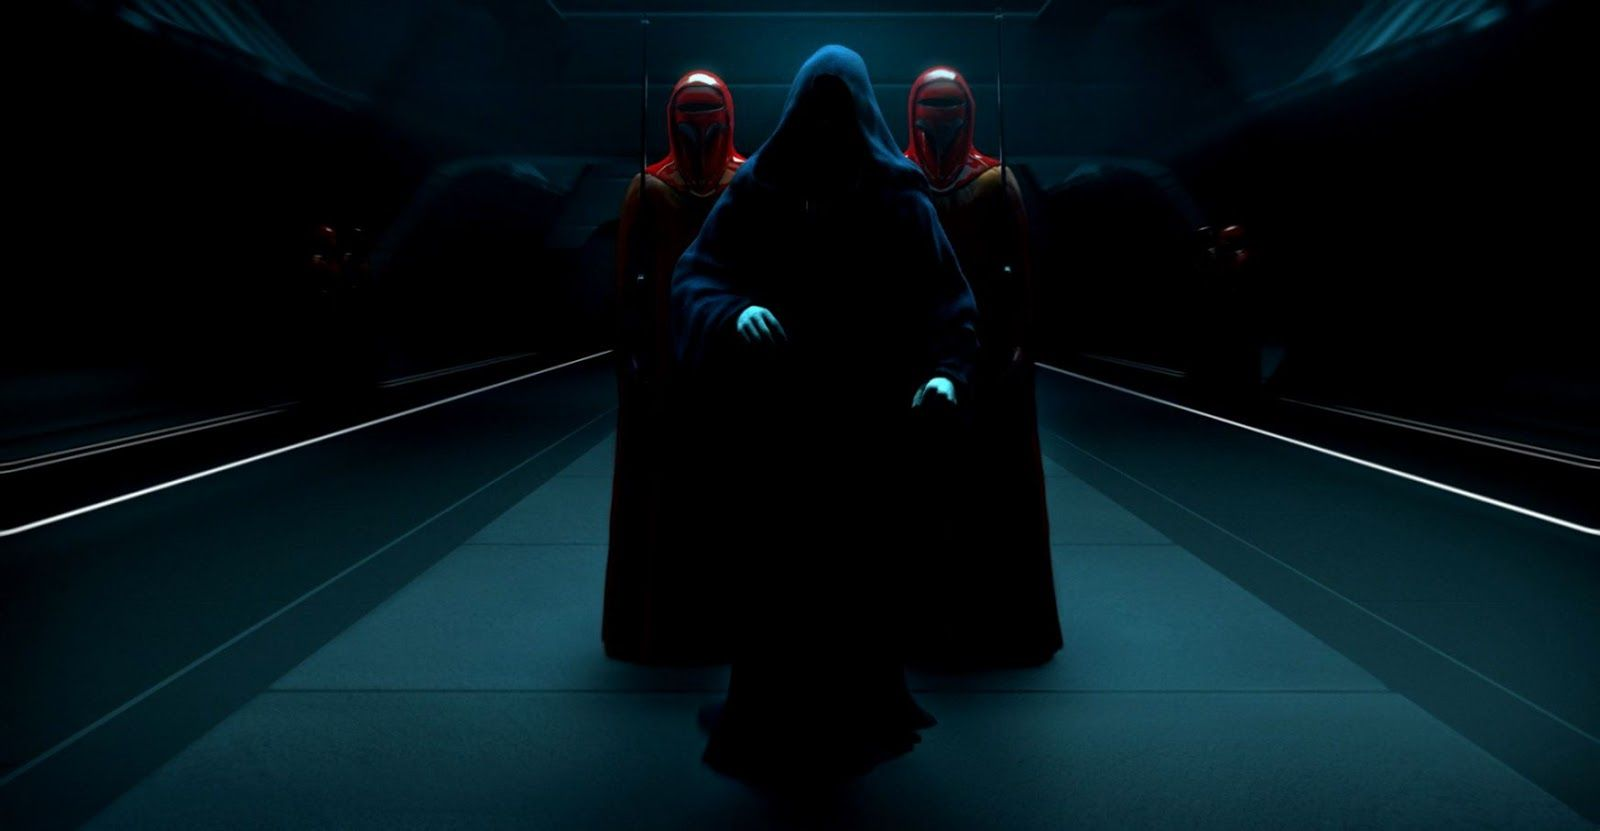 Darth Sidious Wallpapers Top Free Darth Sidious Backgrounds Wallpaperaccess